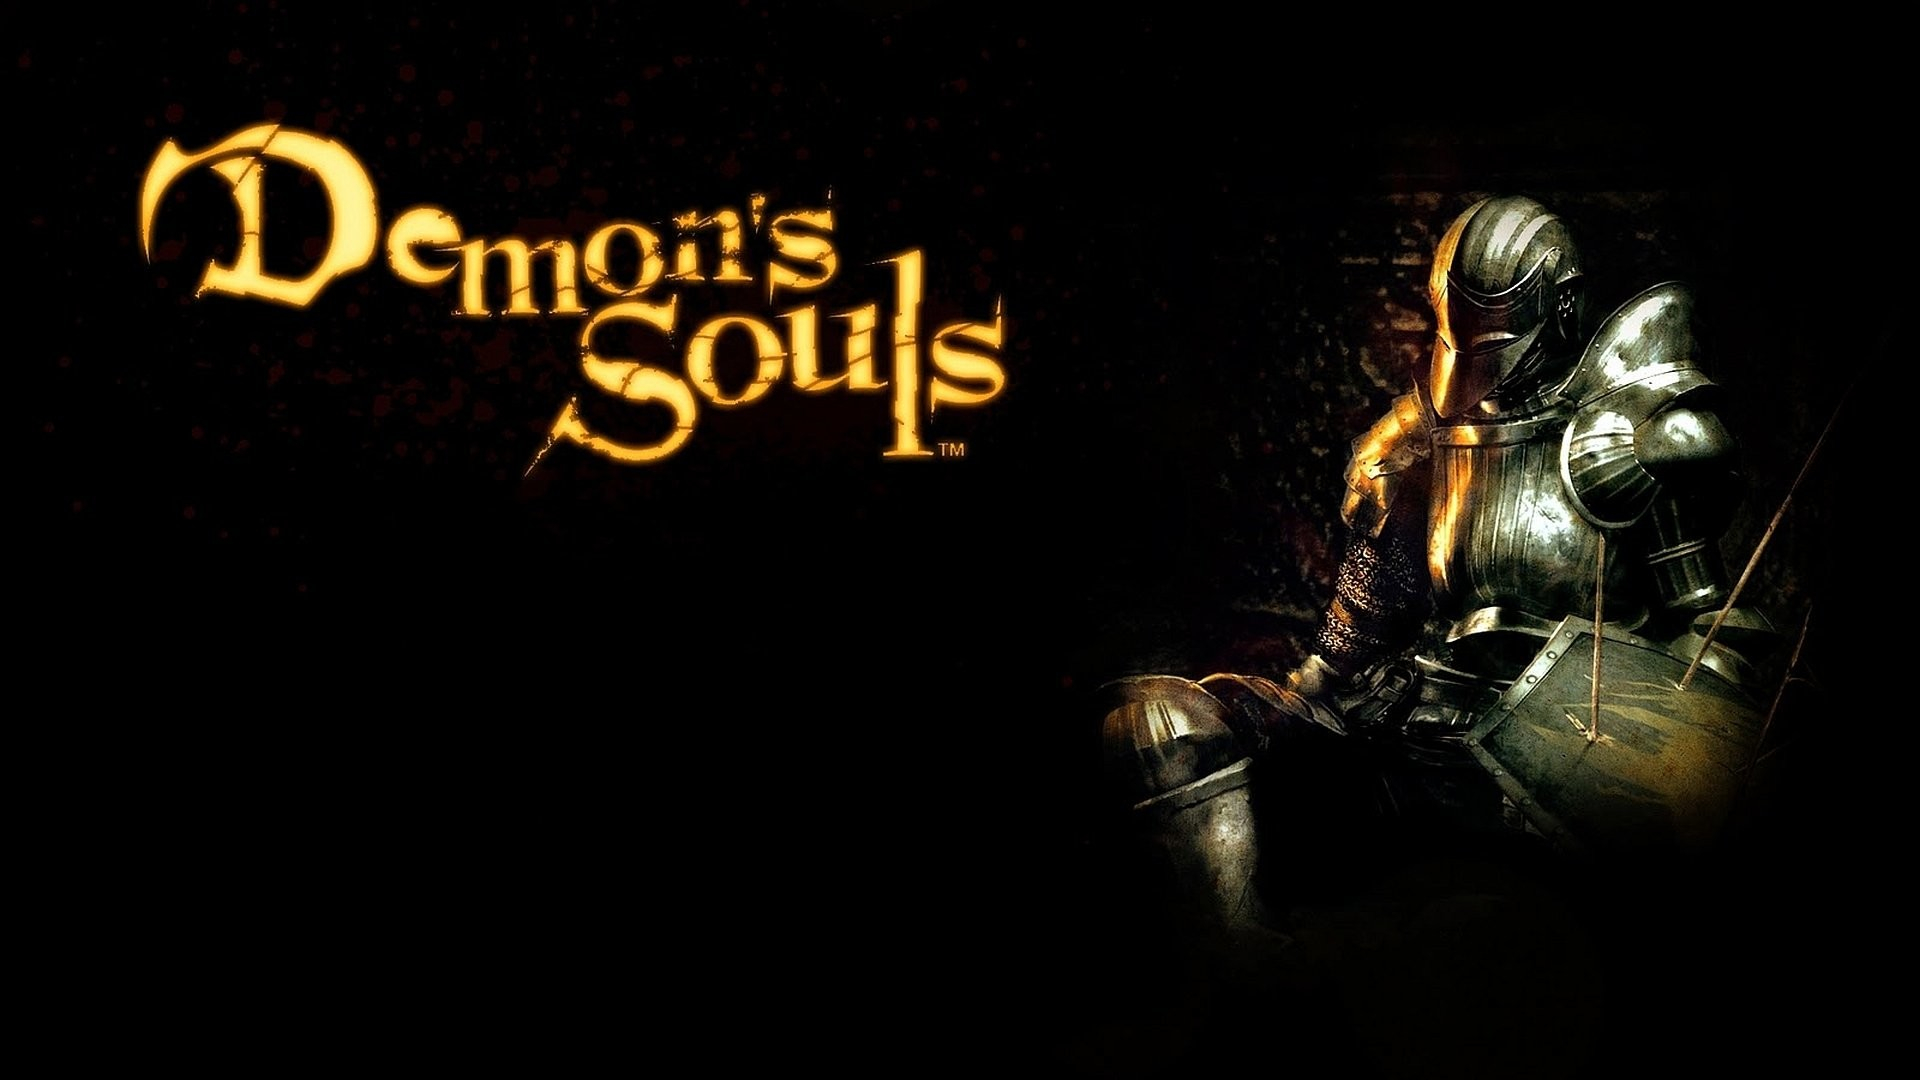 Bluepoint Games Tweets Another Remake Teaser, Fans Suspect It's Demon's Souls Header Image